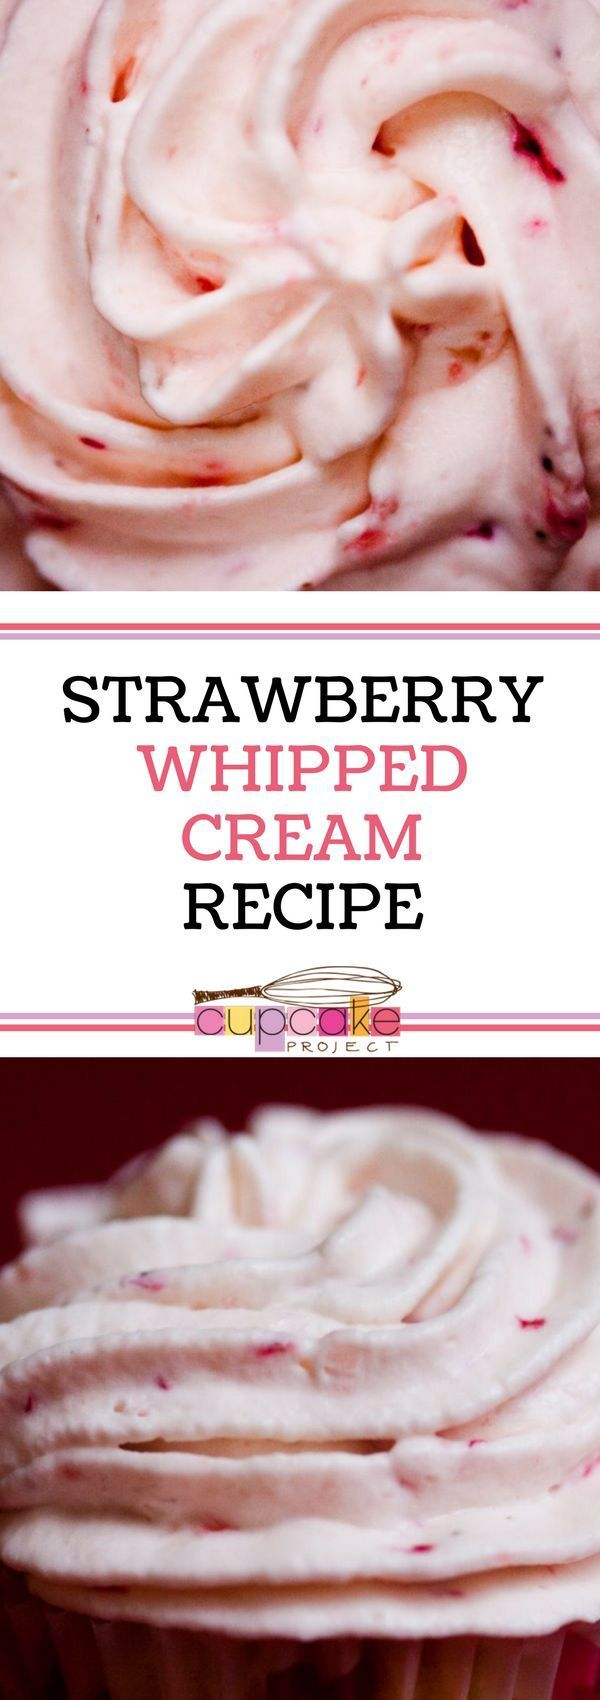 This easy and homemade sweet strawberry whipped cream